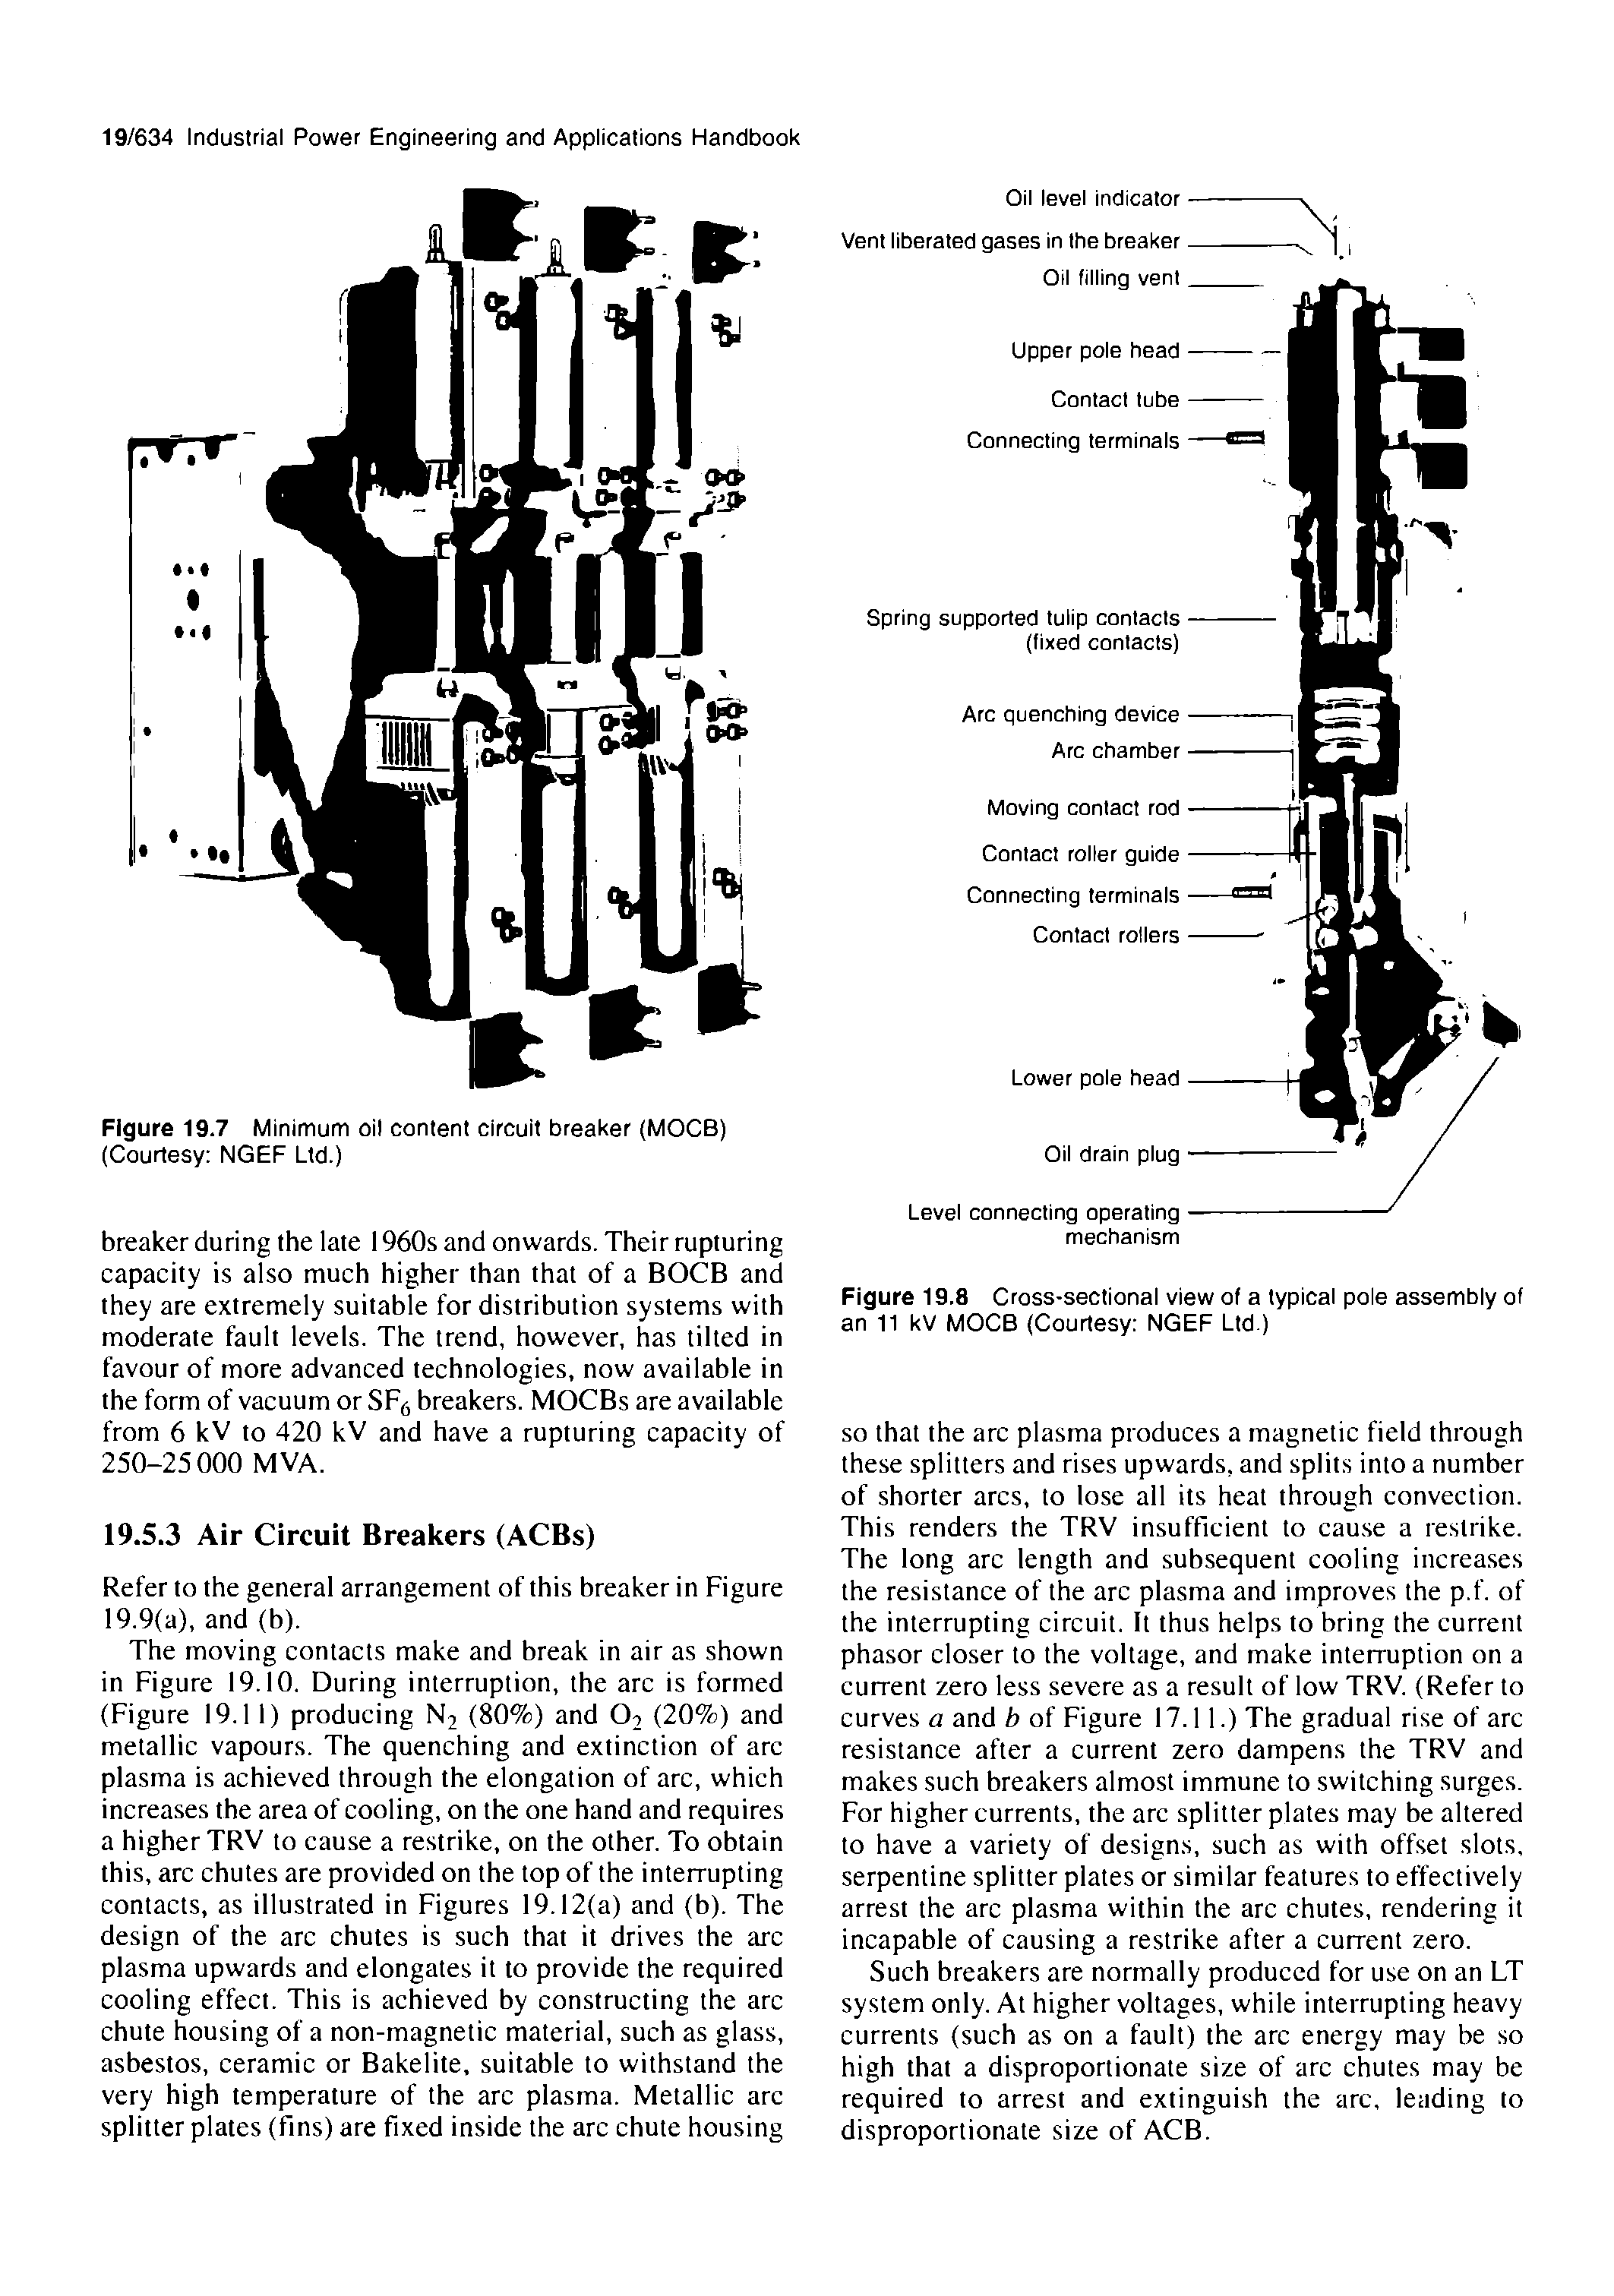 Figure 19.8 Cross-sectional view of a typical pole assembly of an 11 kV MOCB (Courtesy NGEF Ltd.)